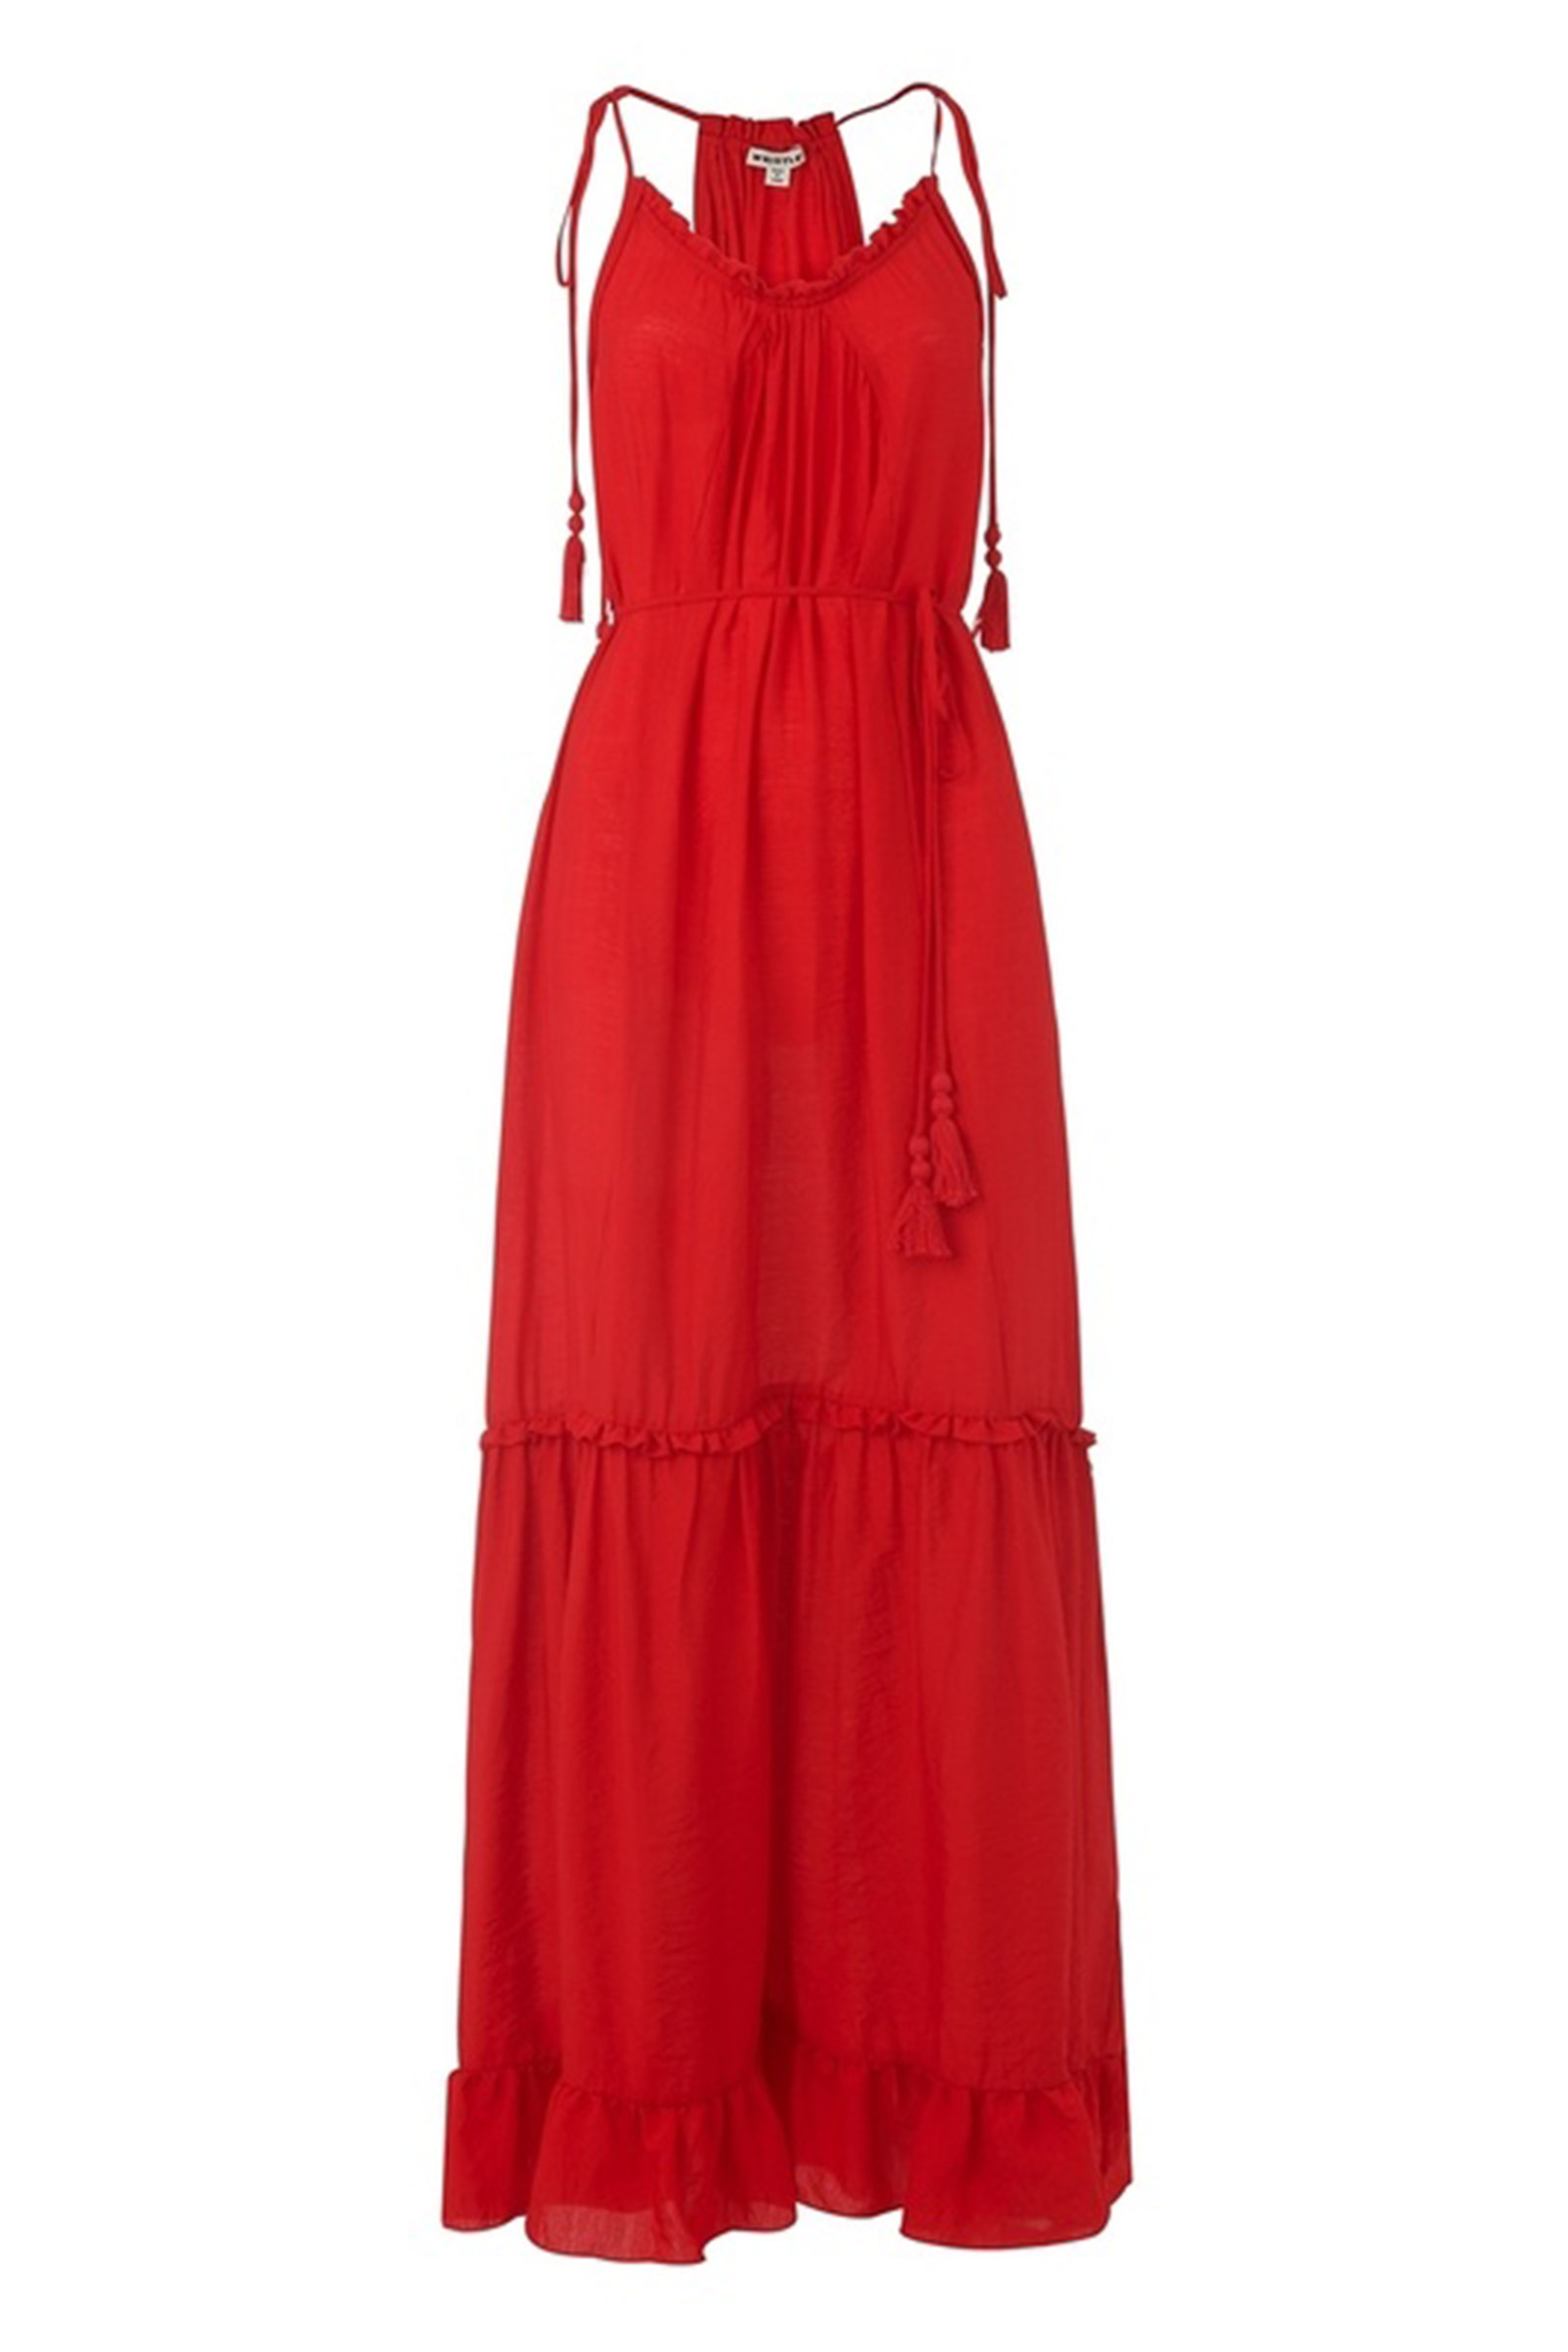 Click to Buy Whistles Red Dress